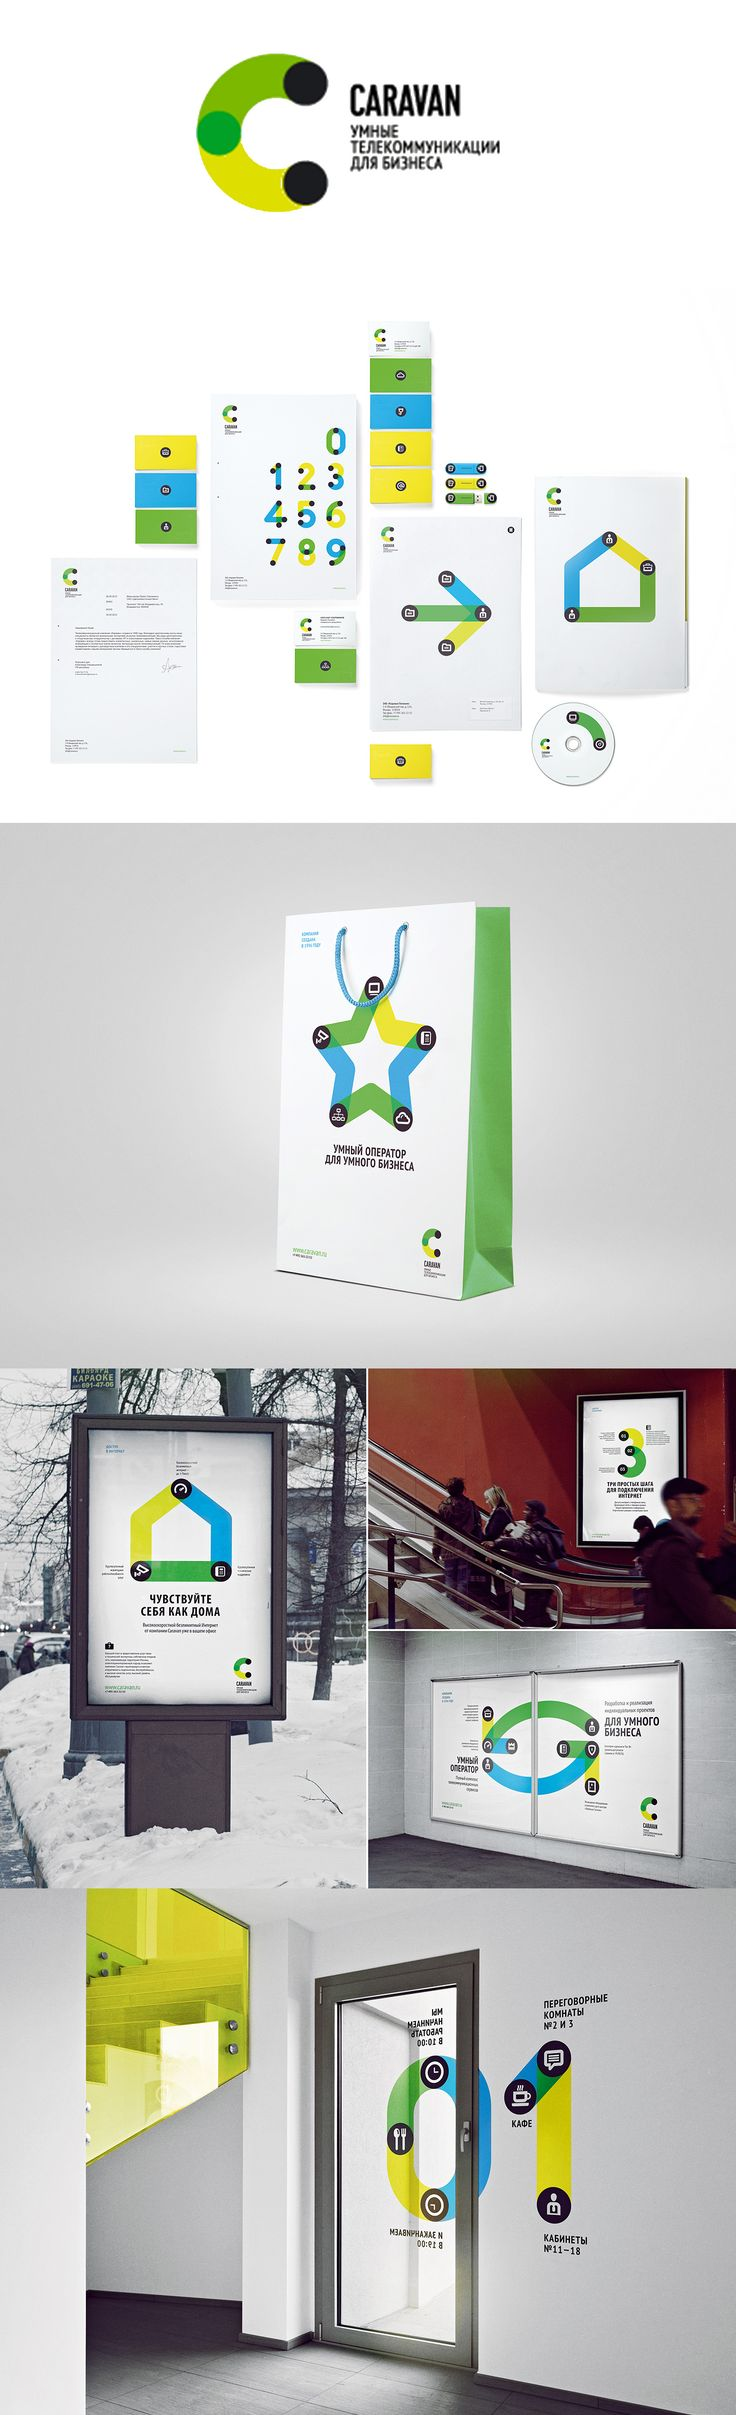 More corporate-designs are collected on: https://pinterest.com/rothenhaeusler/best-of-corporate-design/ · Client: Caravan Telecom · Agency: Plenum Brand Consultancy #branding #identity #corporatedesign